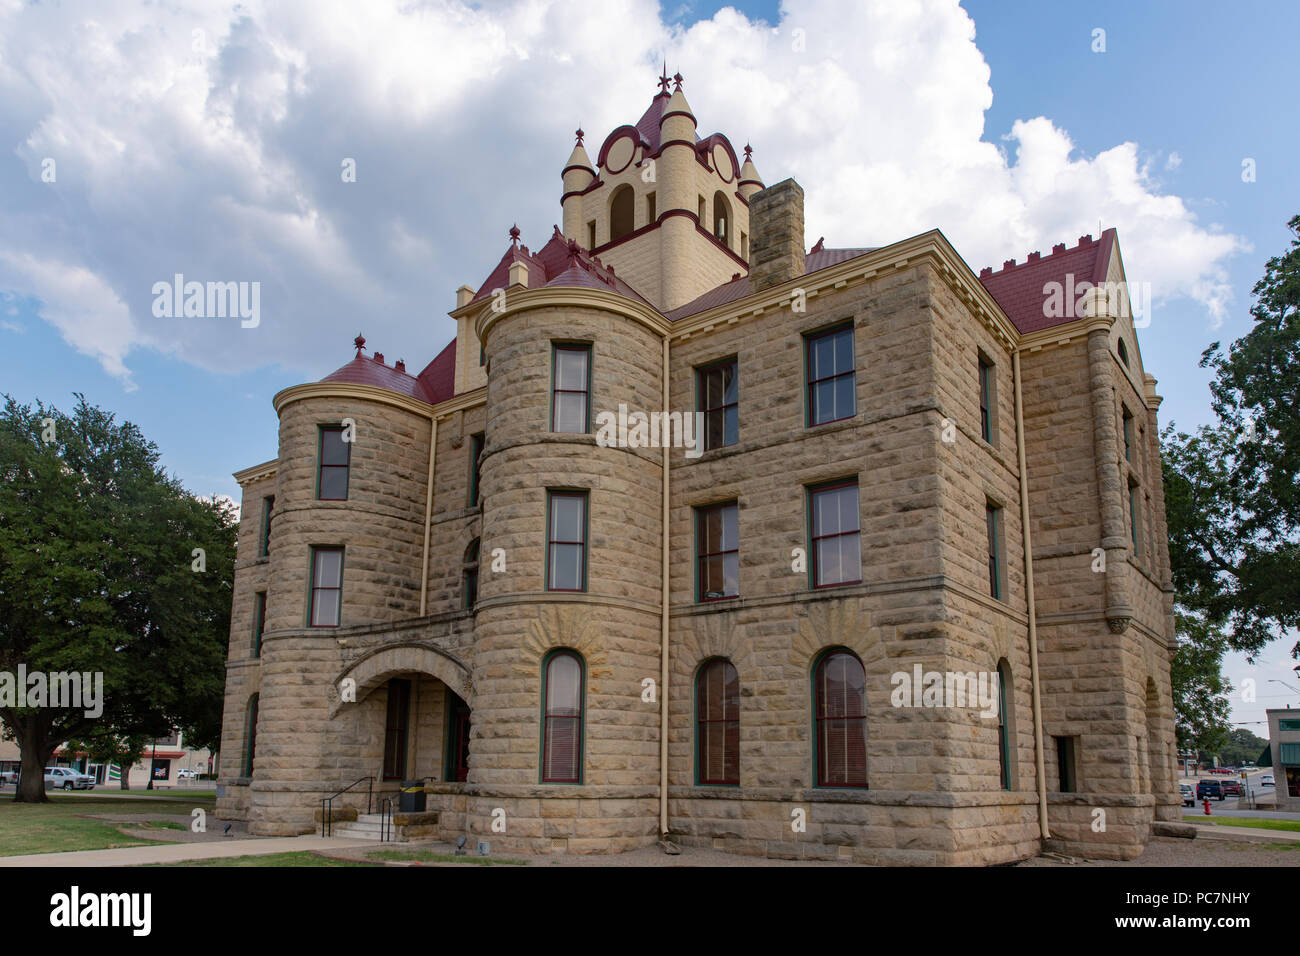 The historic 1900 McCulloch county courthouse in Brady Texas built in Romanesque Revival Style - Stock Image